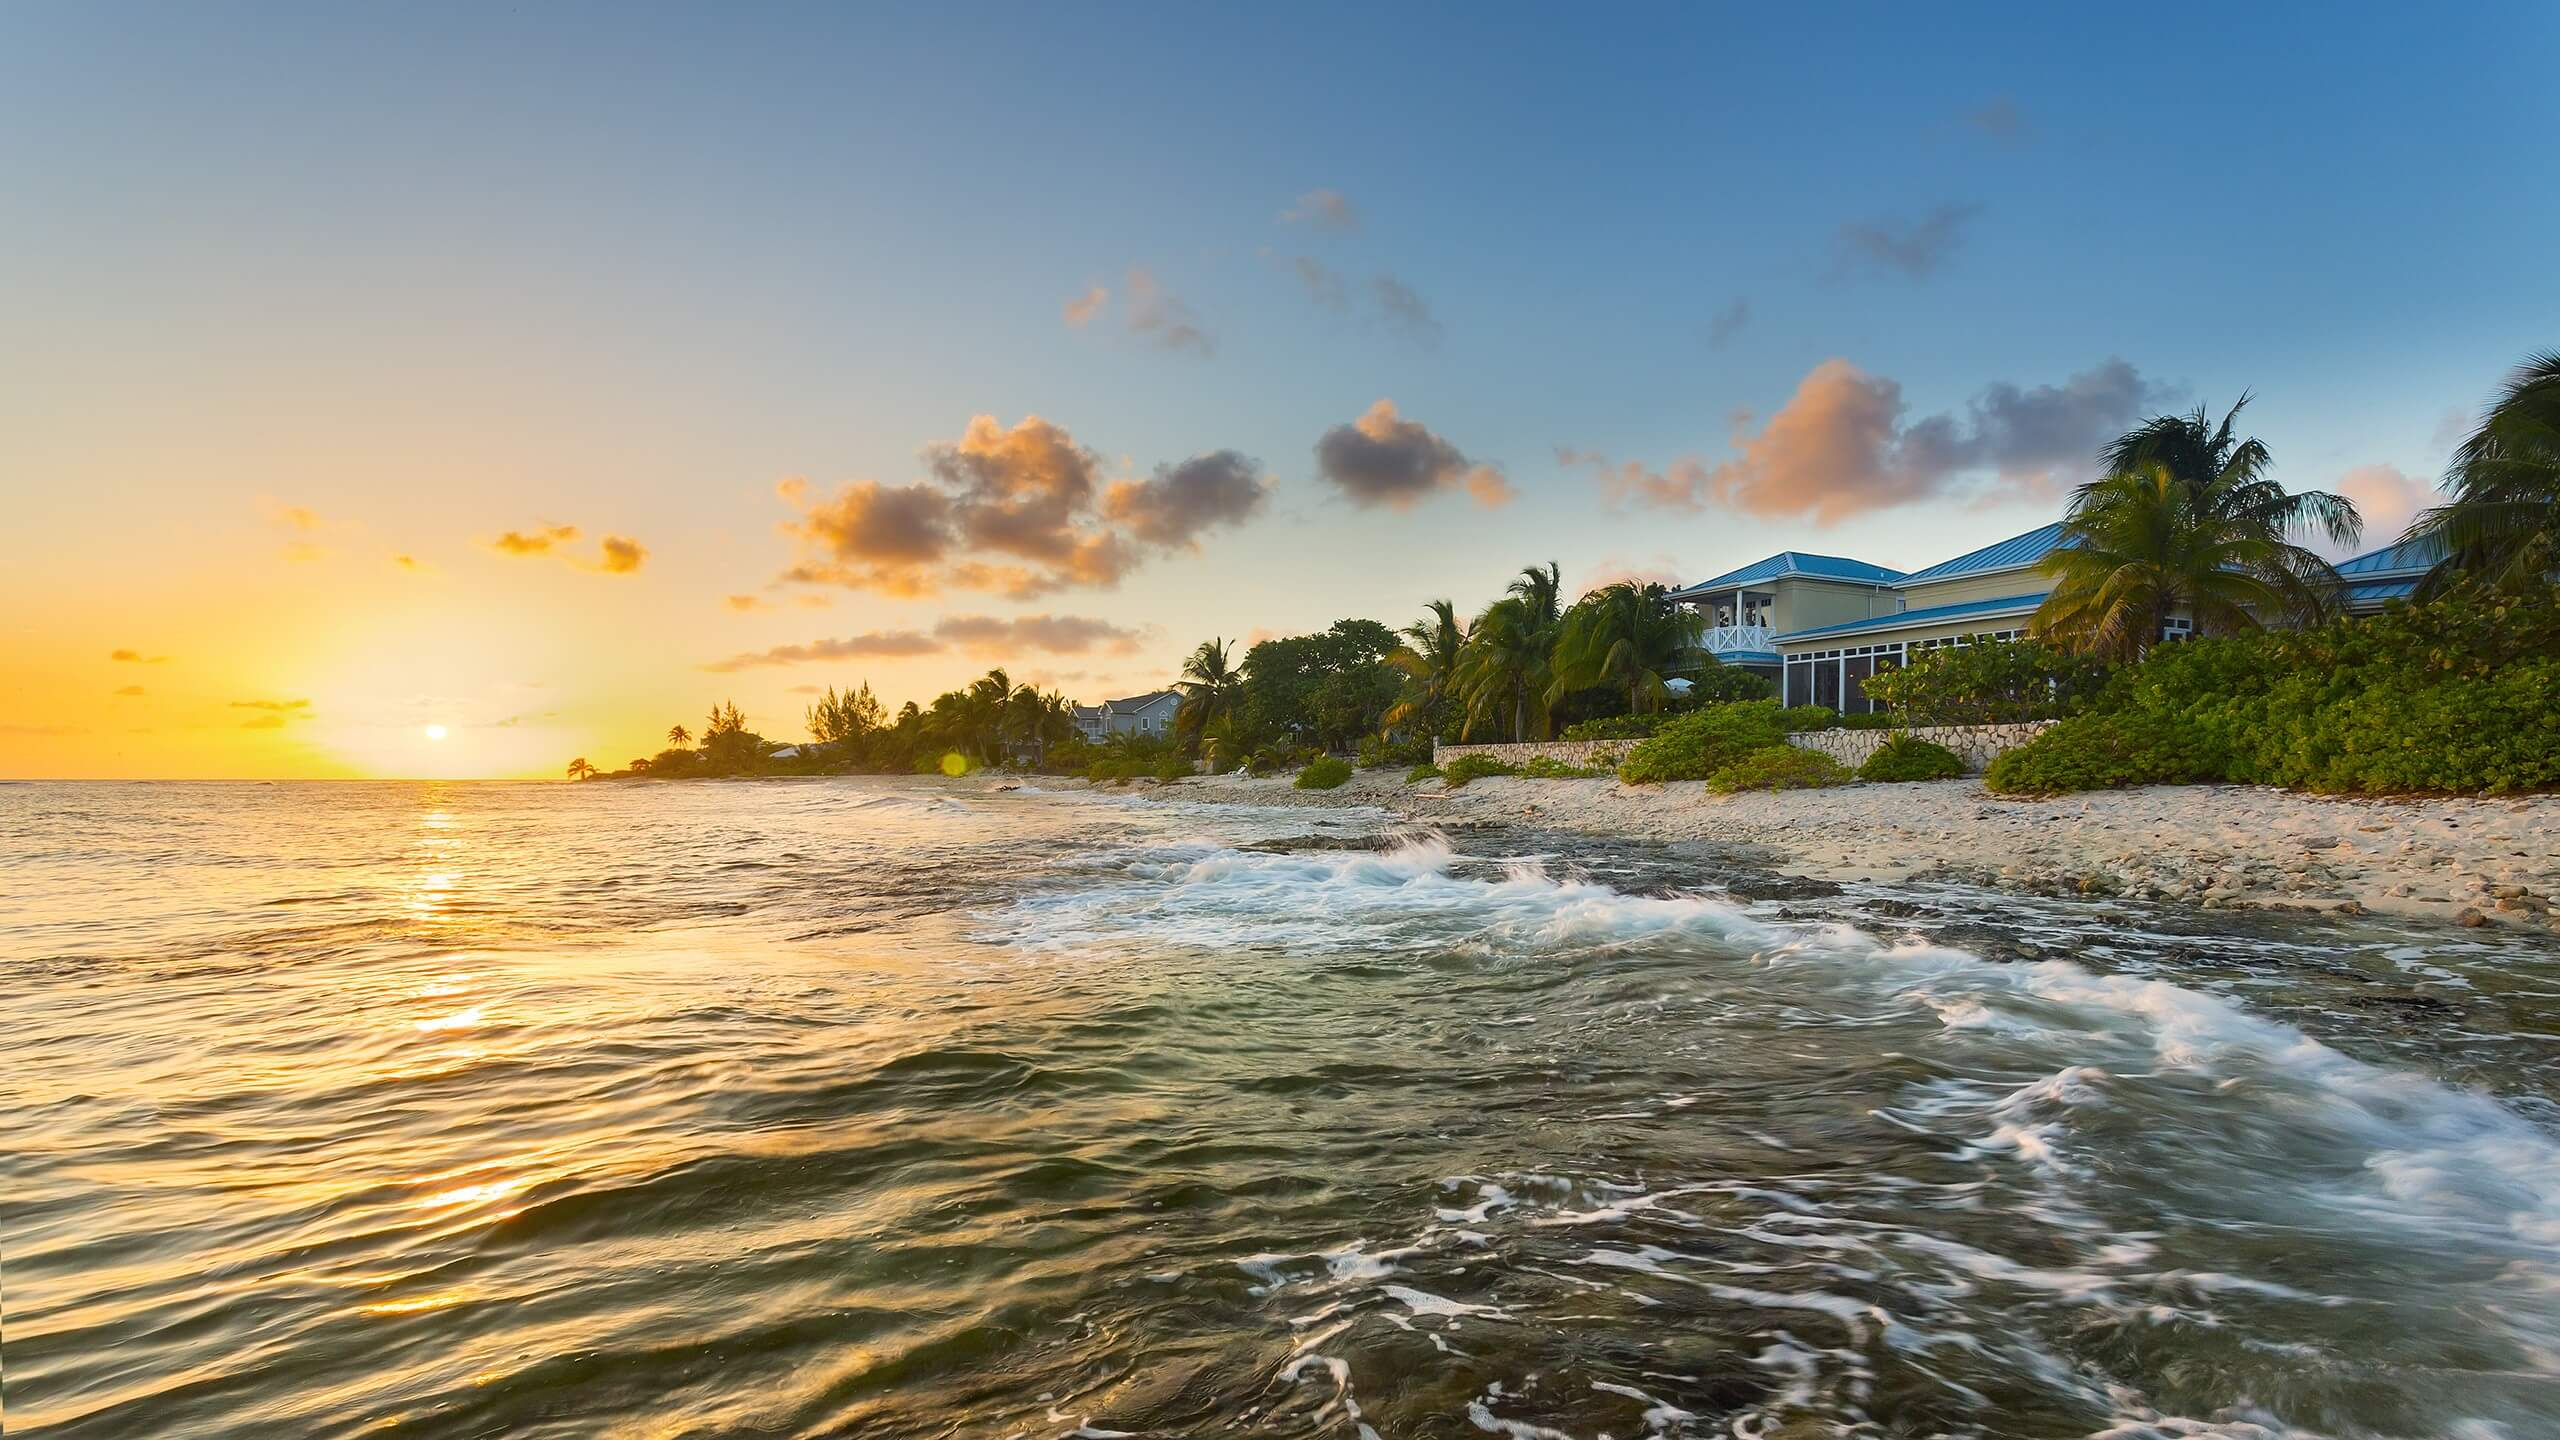 Searching for property in Cayman with Milestone - Image 3